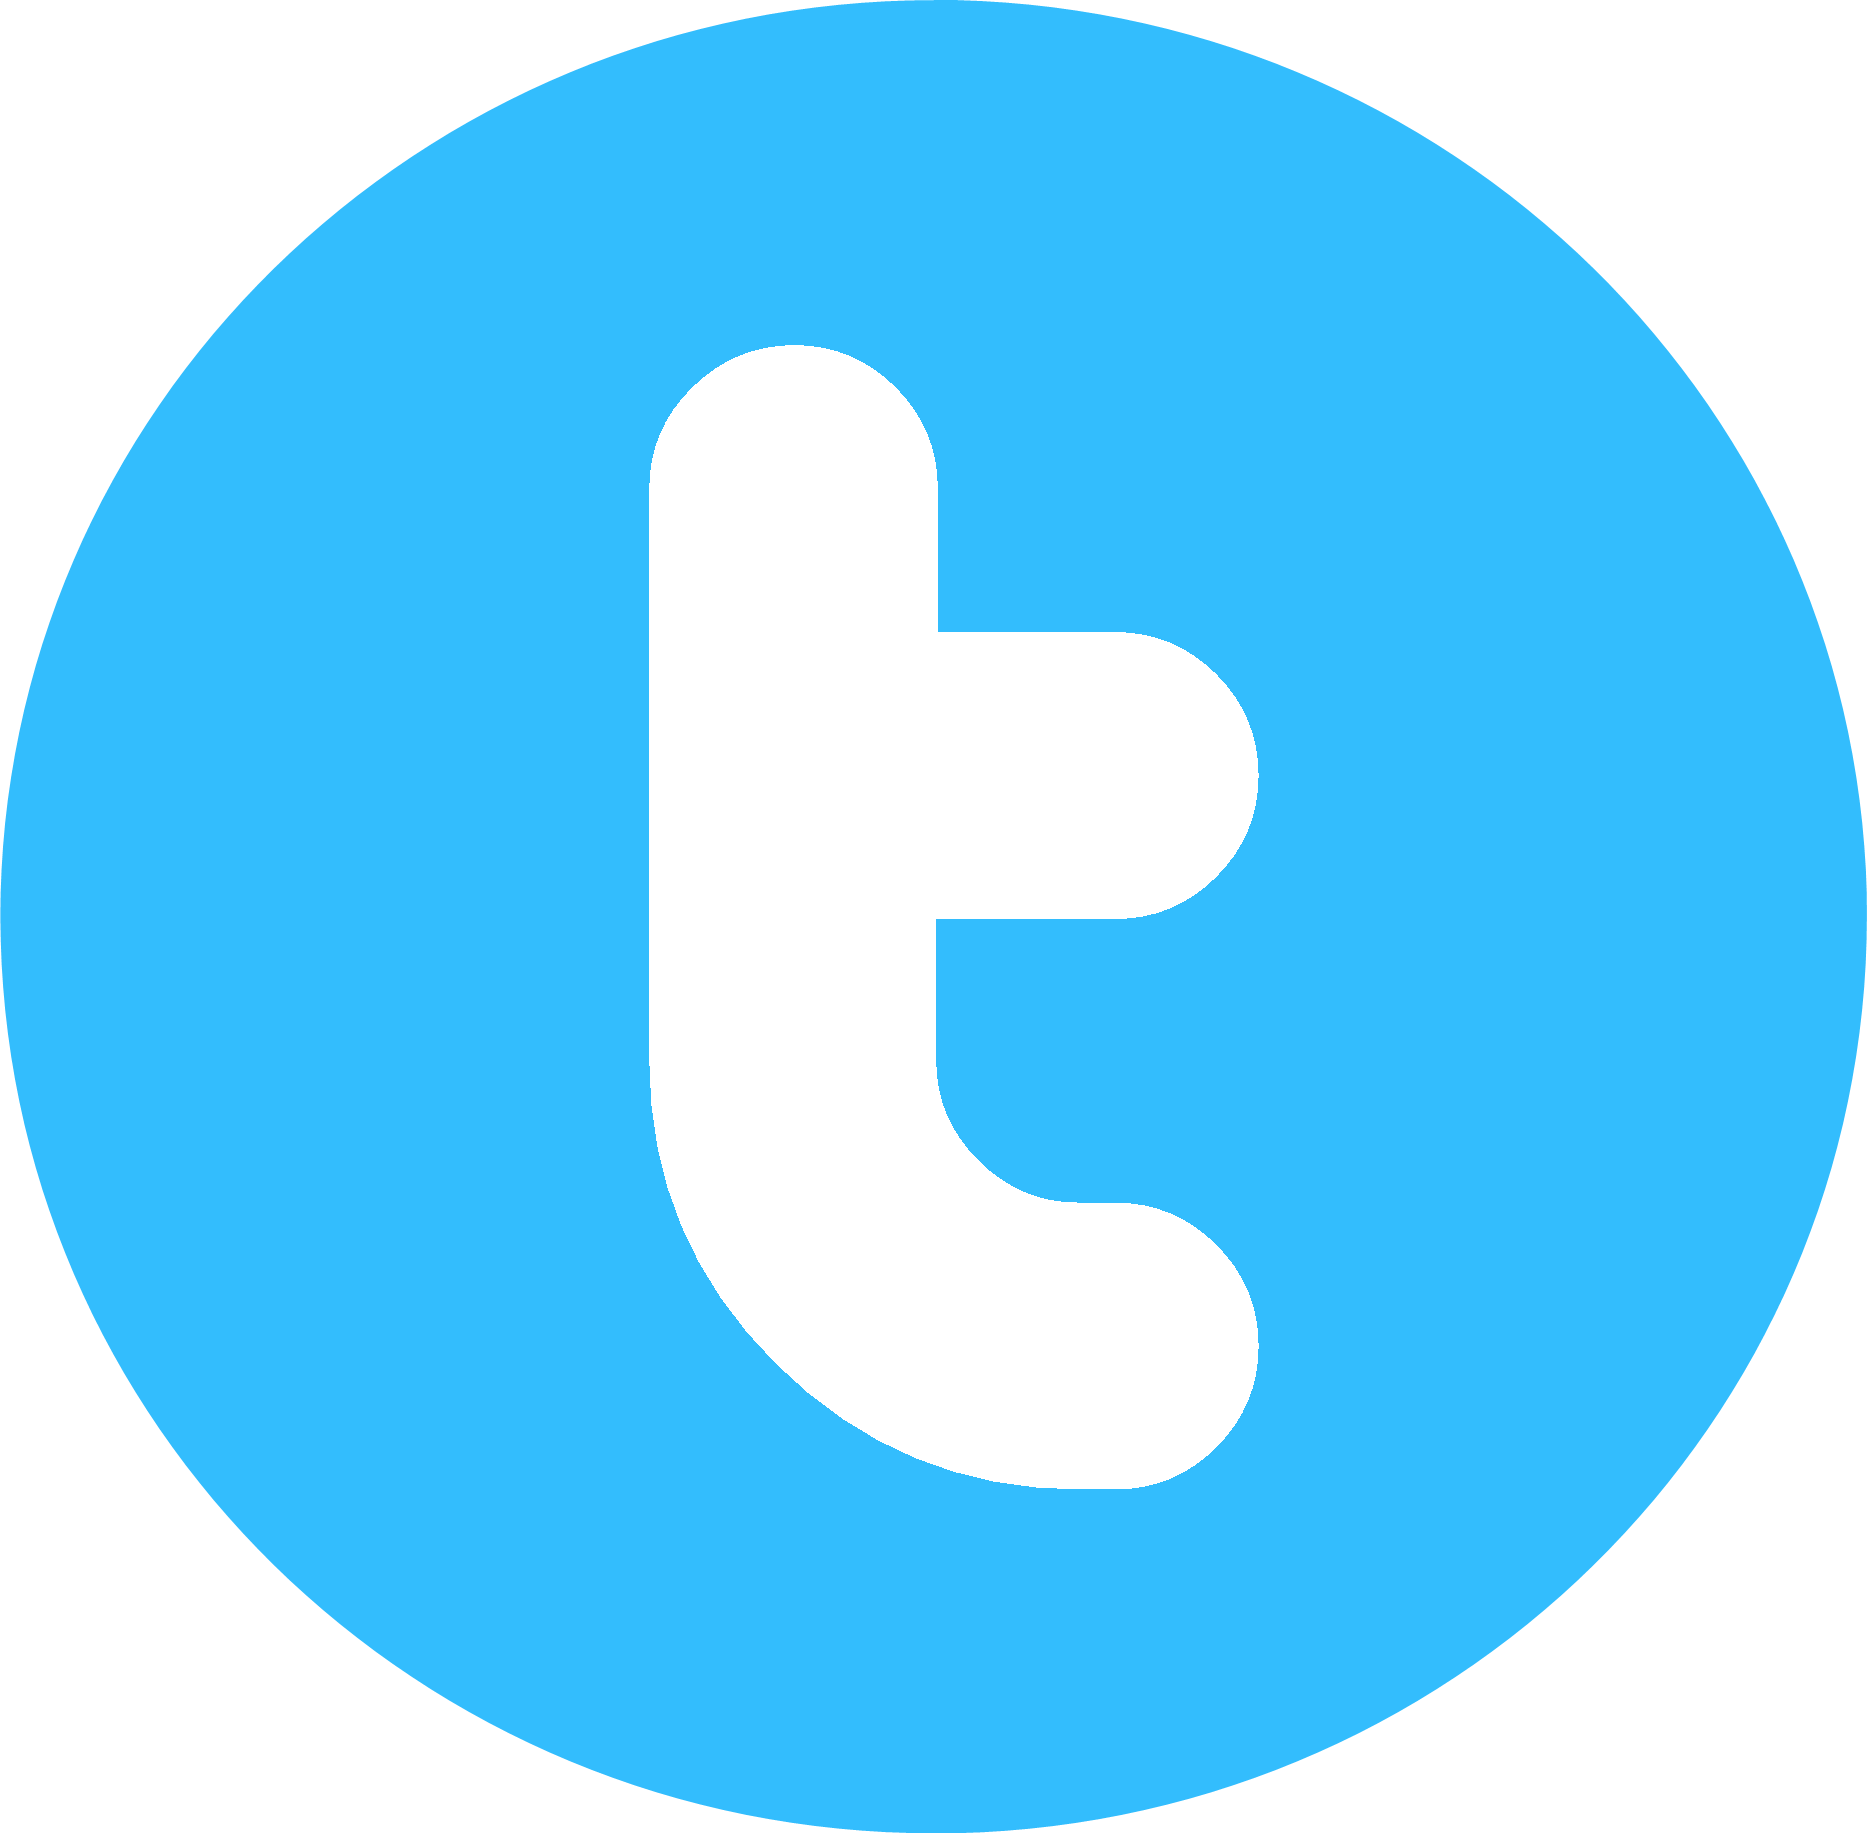 Transparent images all highquality. Twitter logo 2016 png graphic download